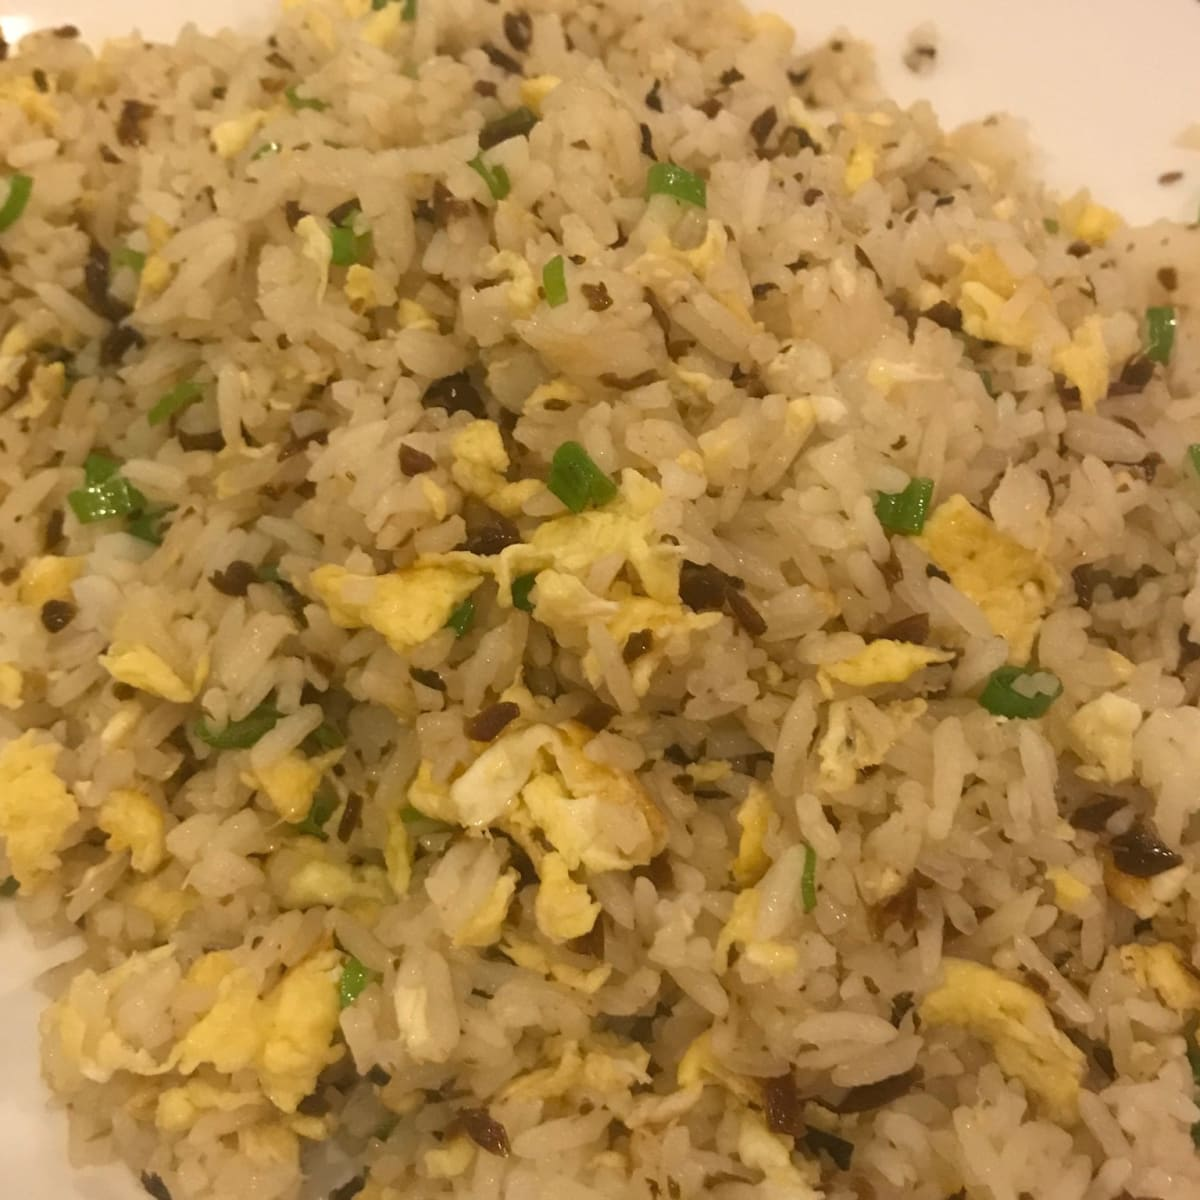 Chengdu Taste - fried rice